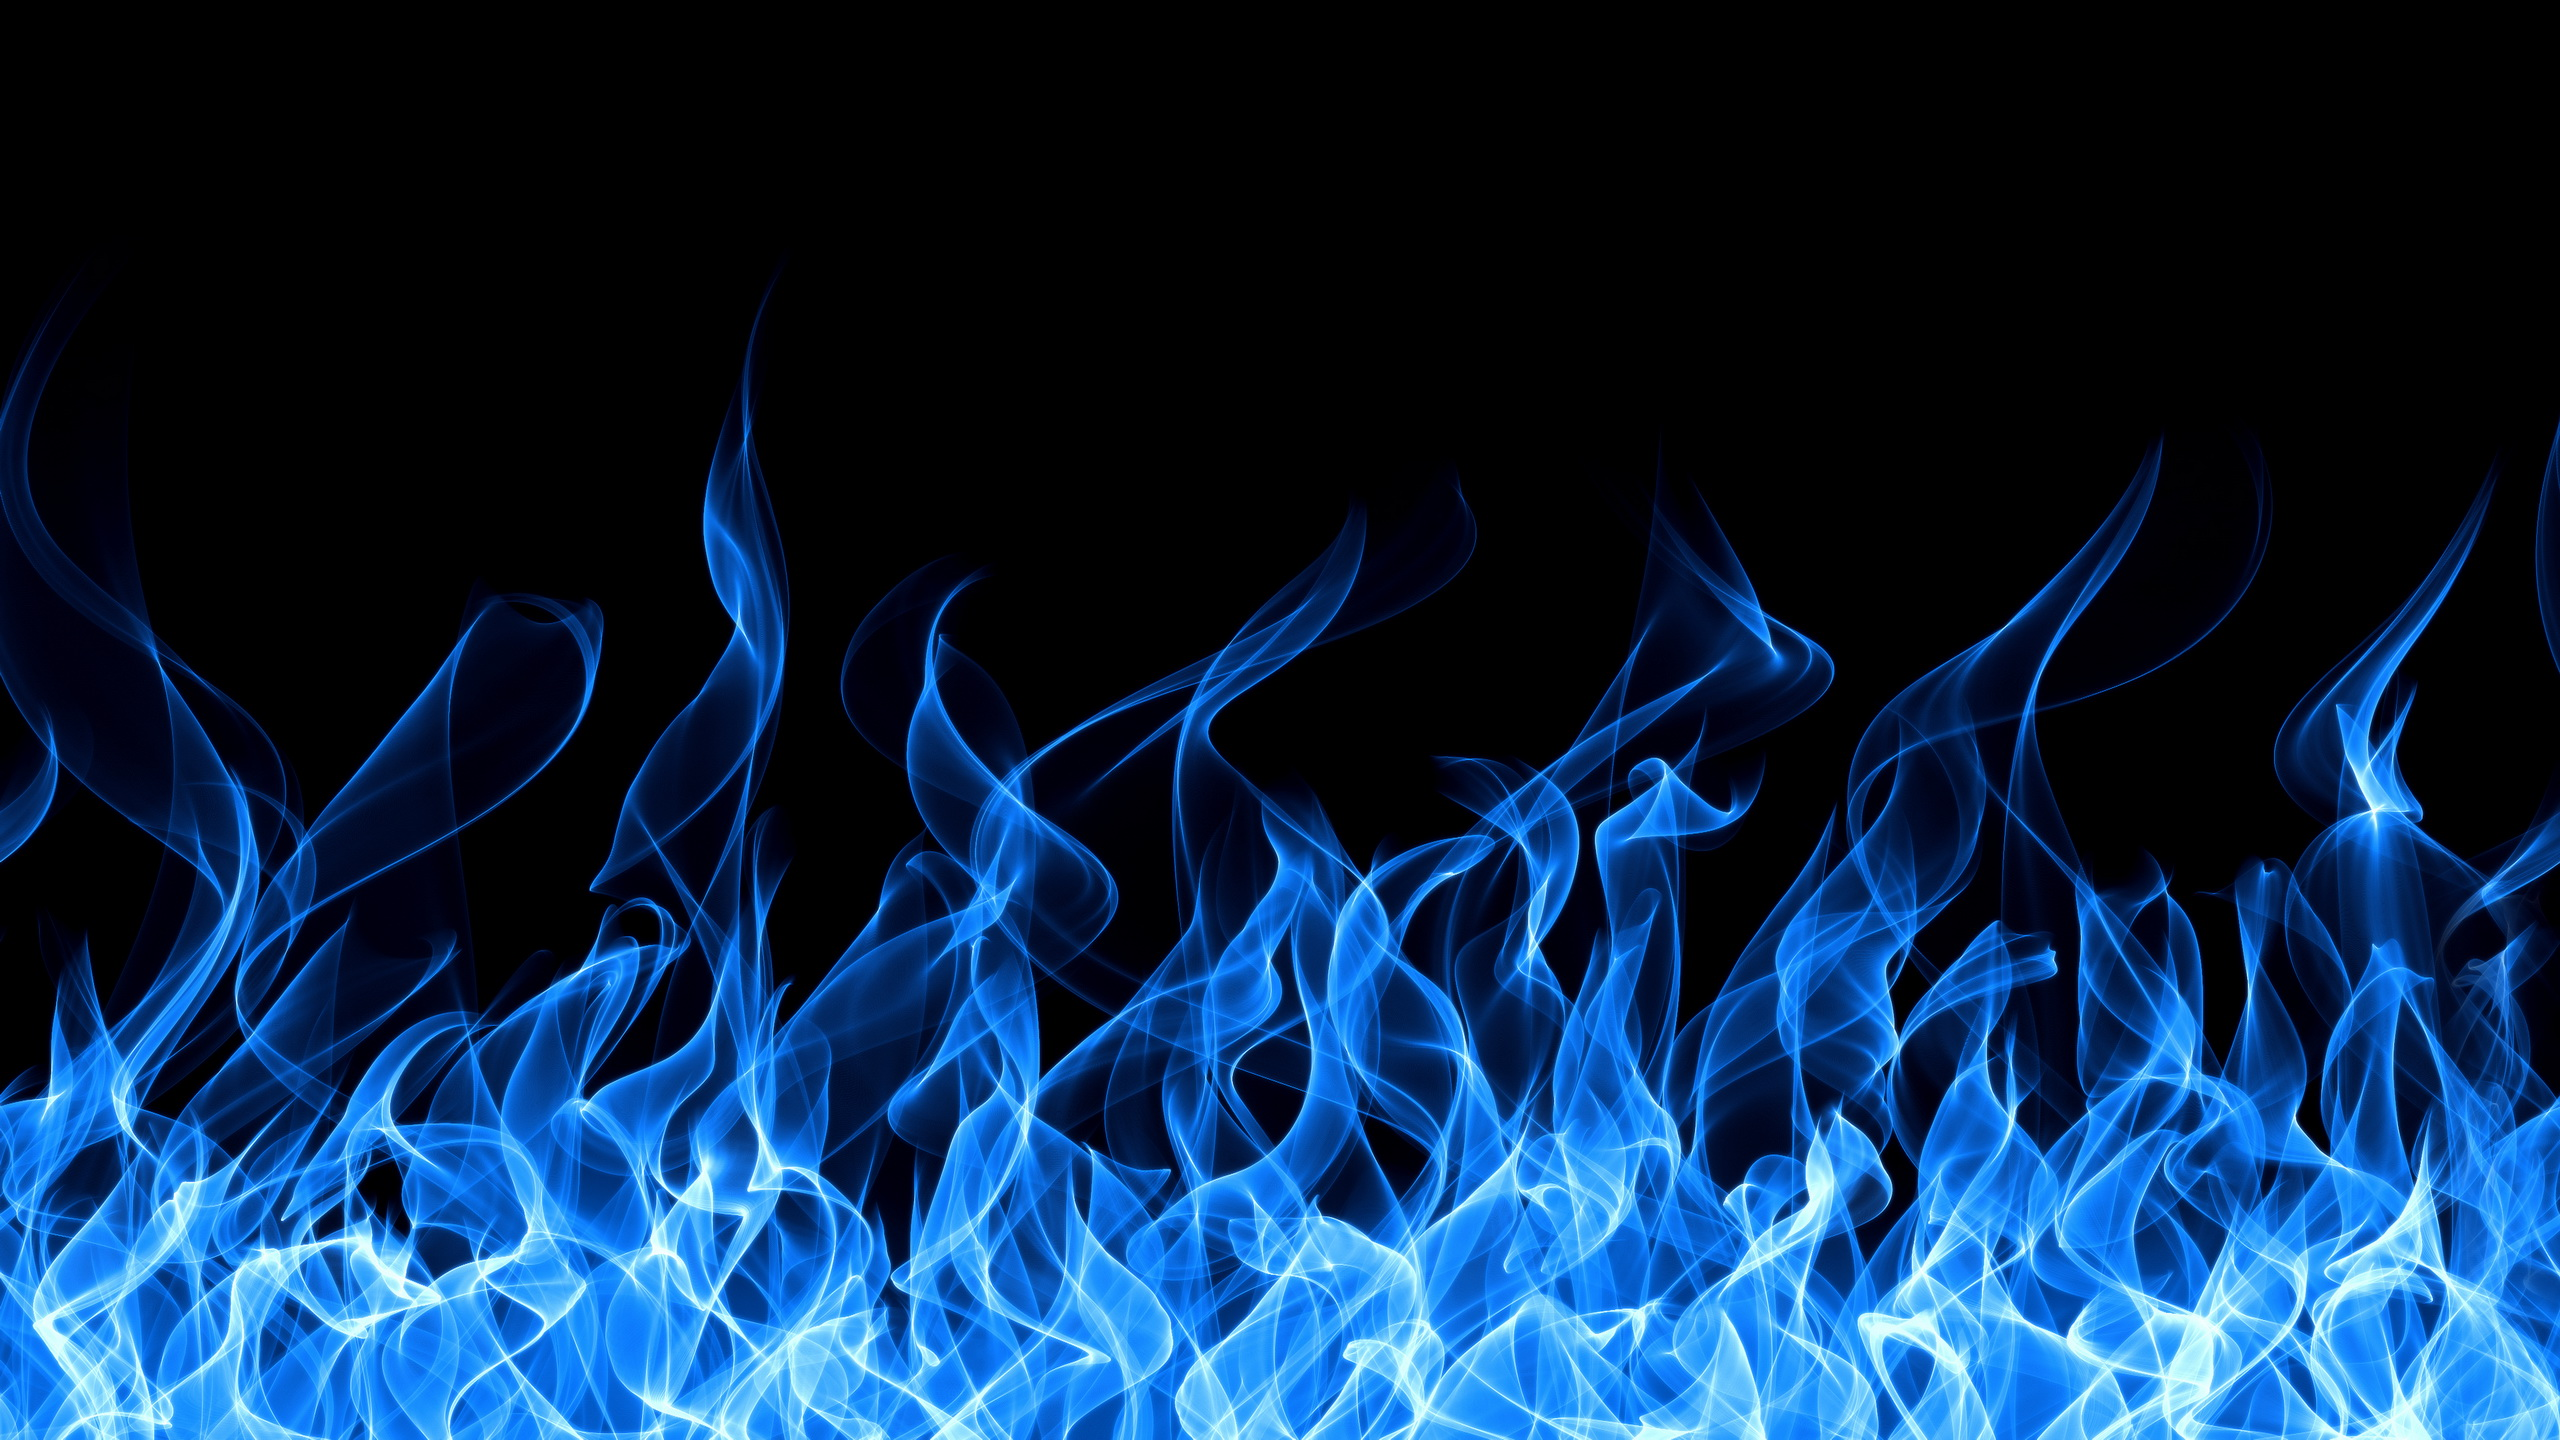 Blue Fire Wallpaper Hd Wallpaperwiki